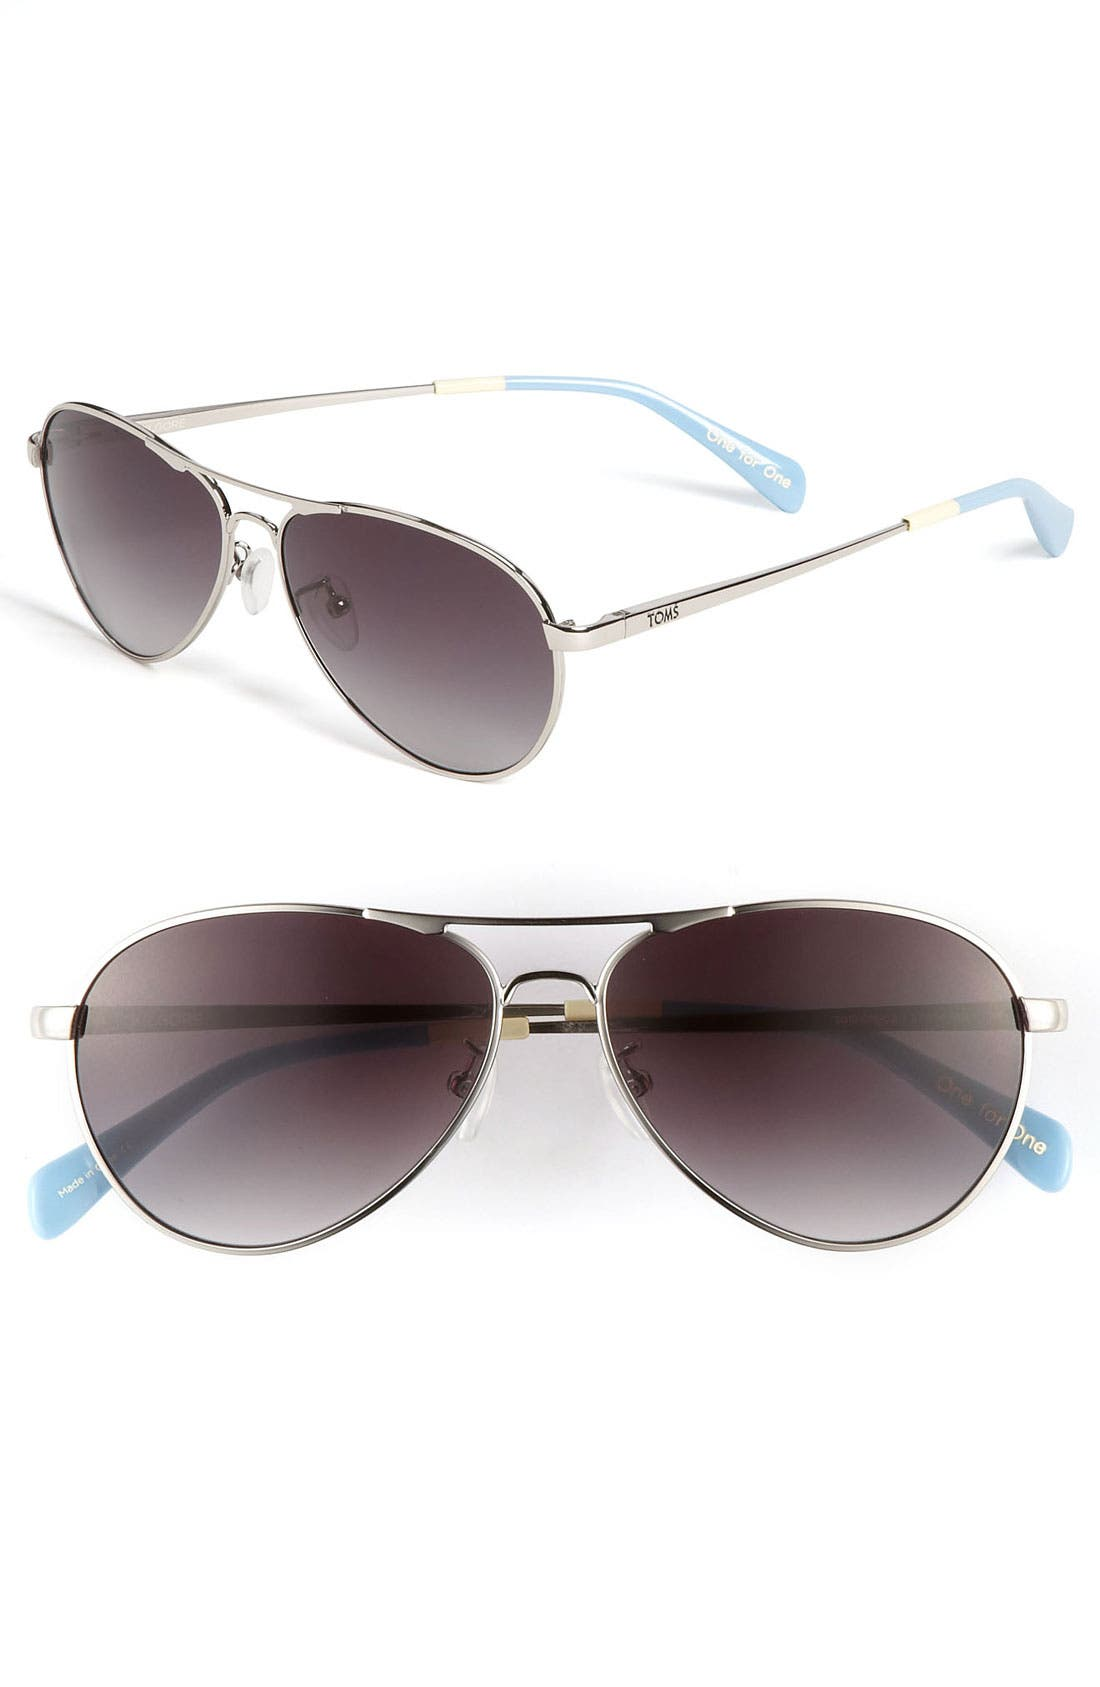 'Kilgore' 57mm Polarized Aviator Sunglasses,                             Main thumbnail 1, color,                             040